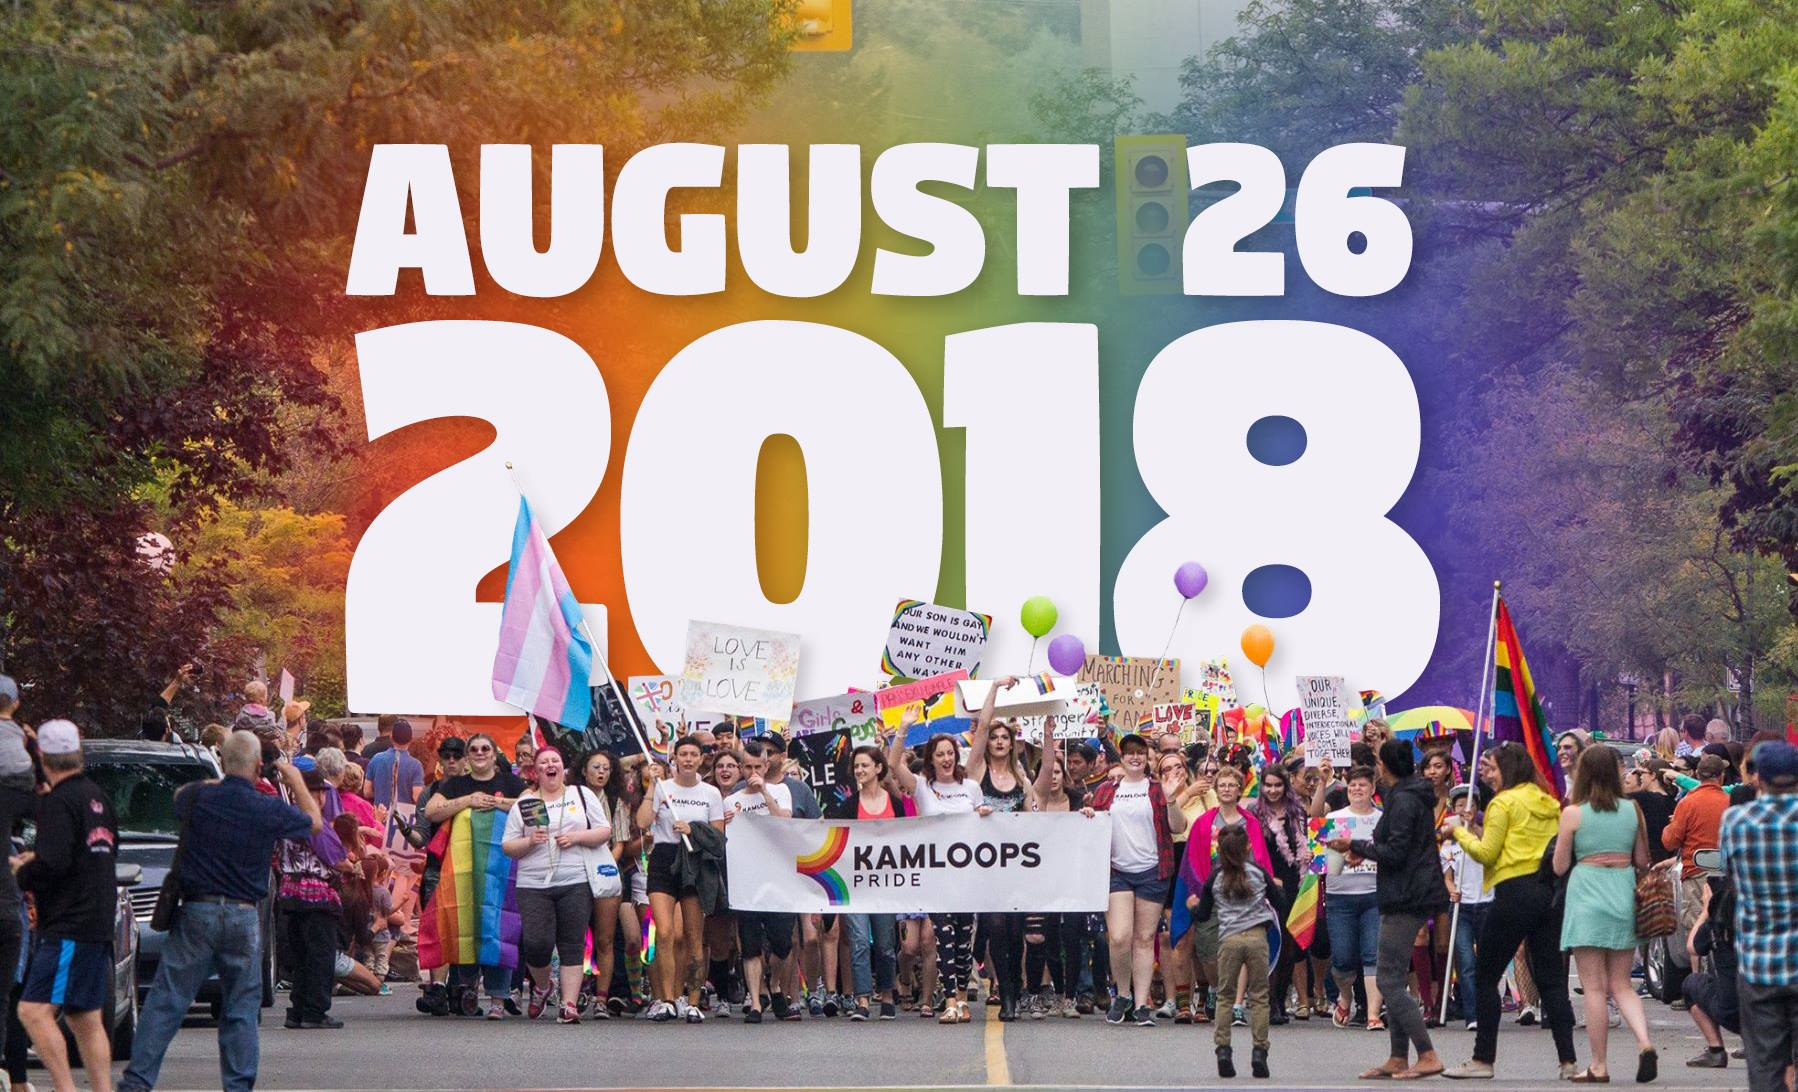 Kamloops Pride Parade date now set, with plans in the works for a bigger event than last year's